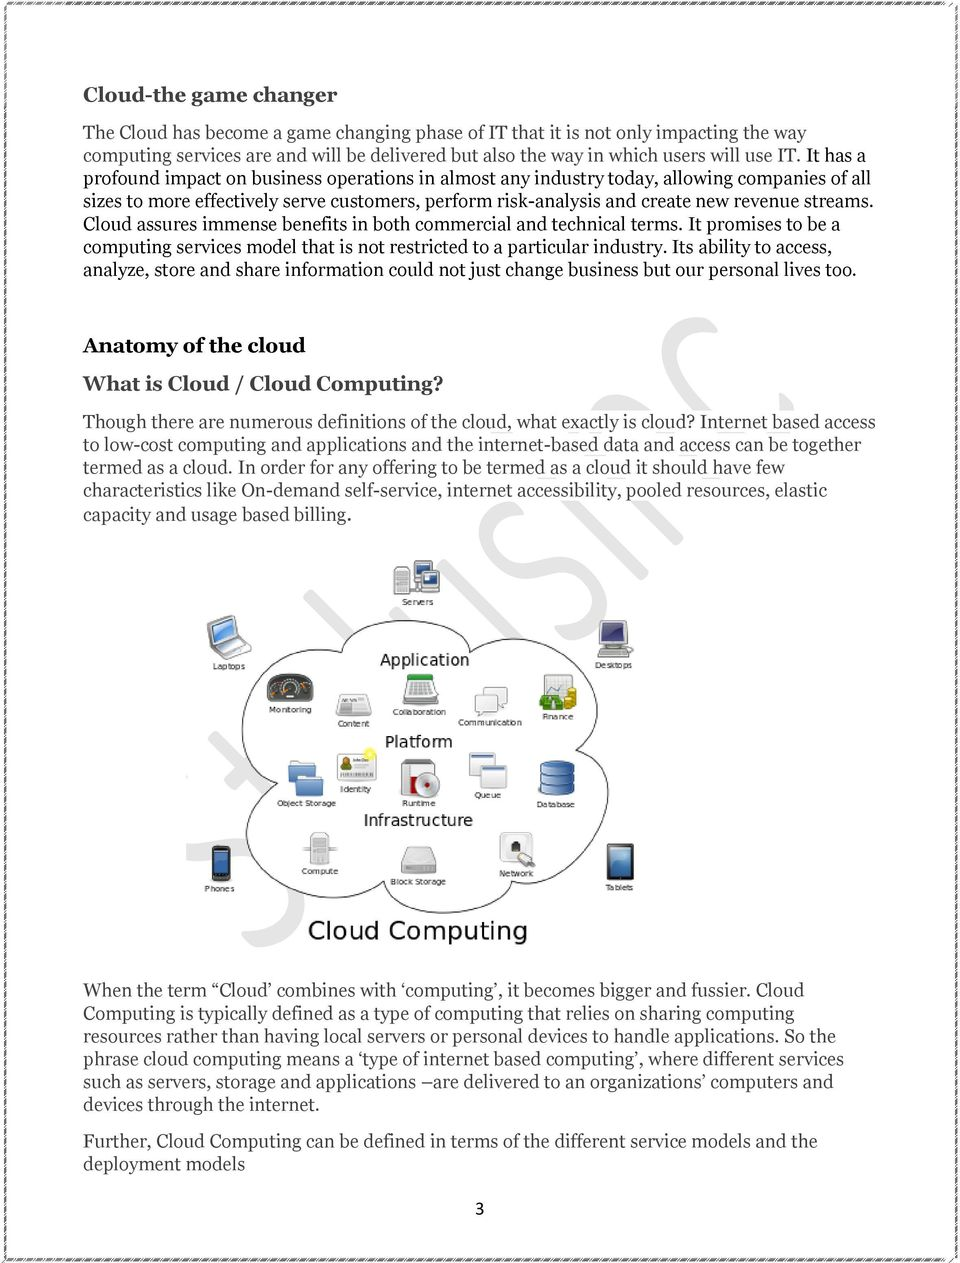 Cloud assures immense benefits in both commercial and technical terms. It promises to be a computing services model that is not restricted to a particular industry.